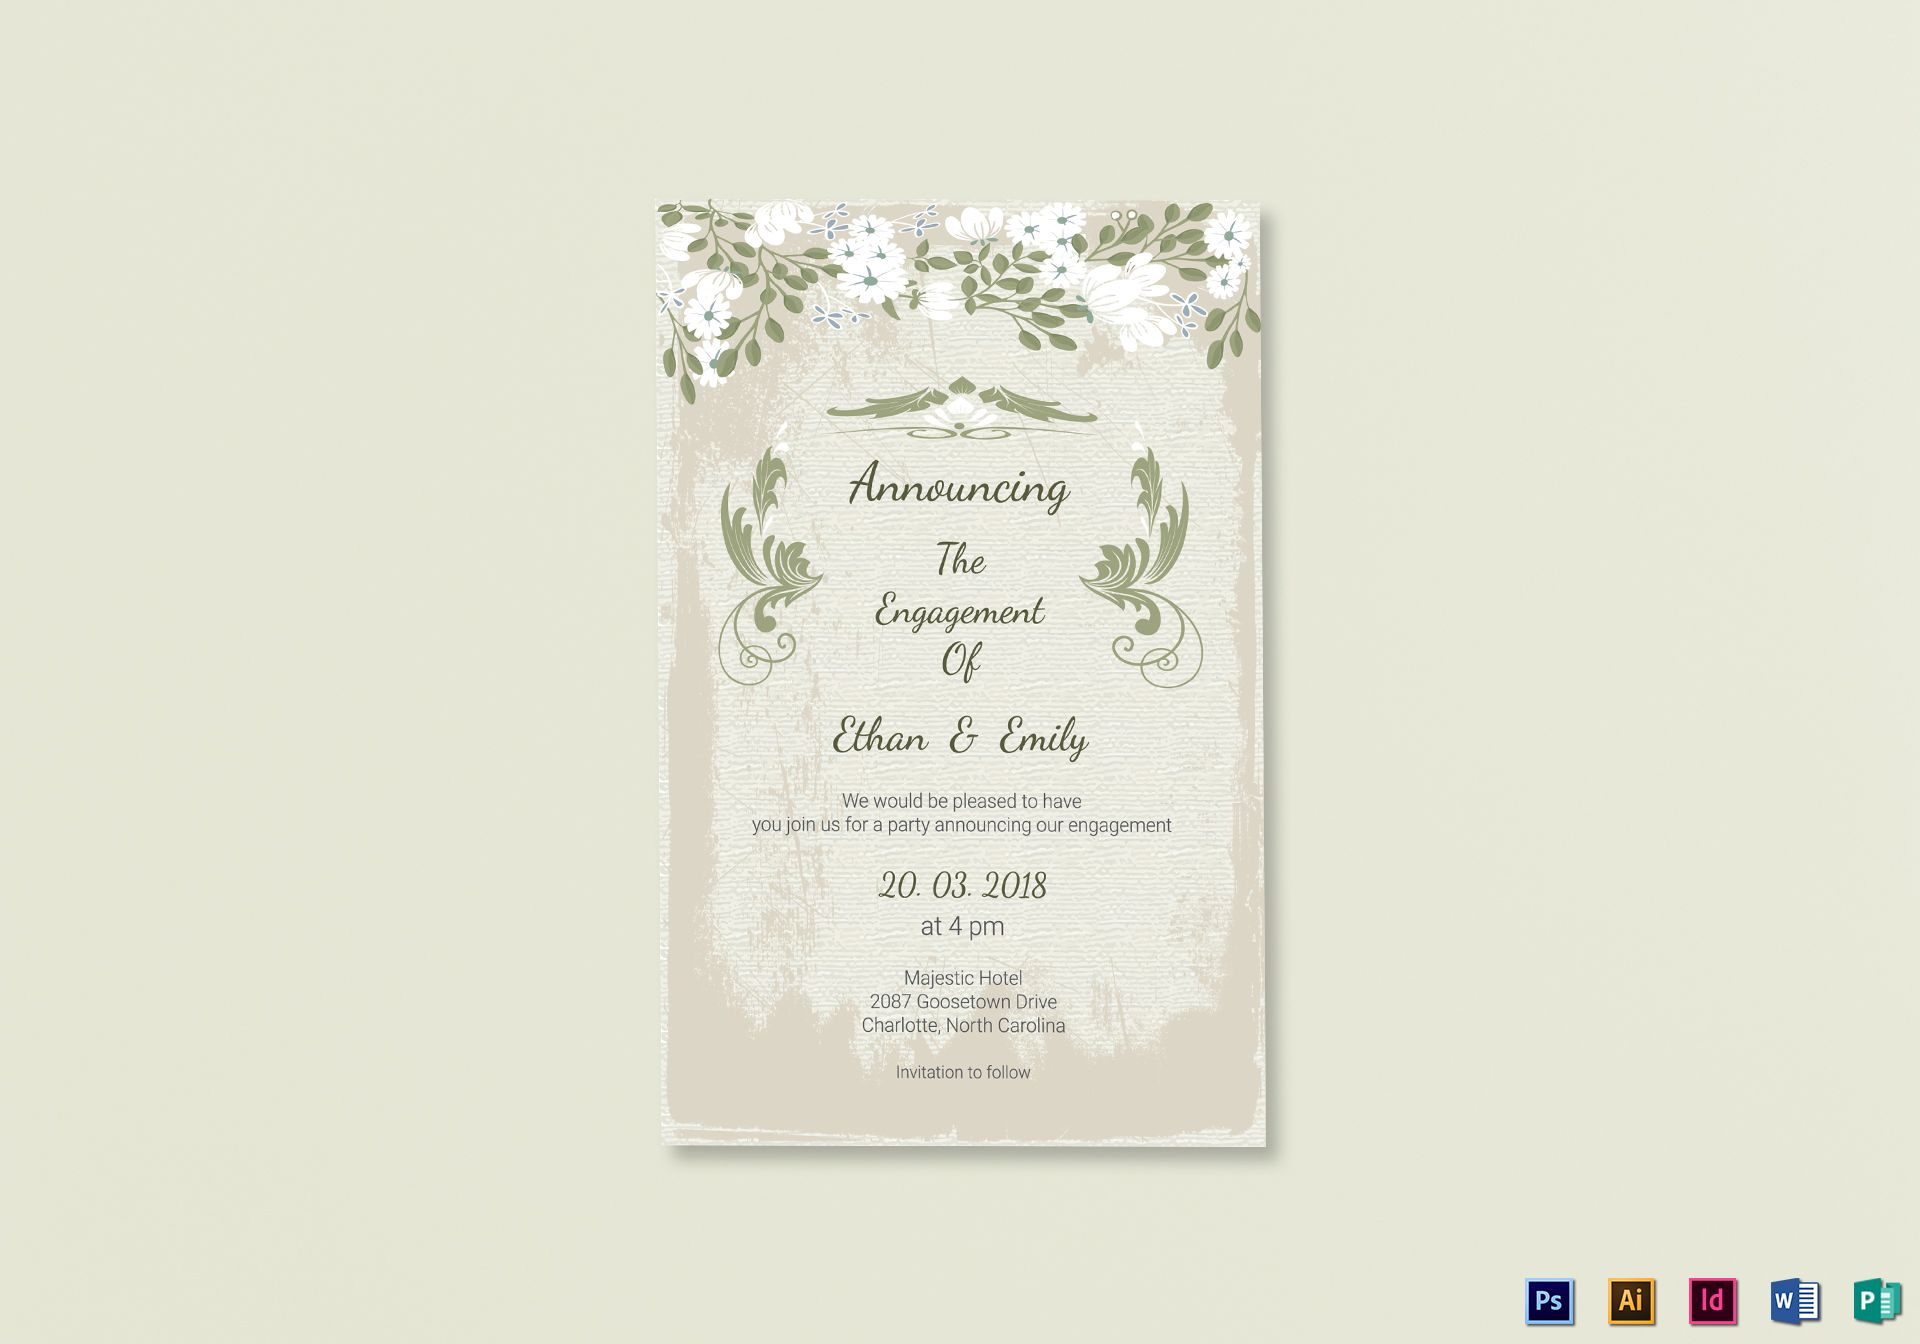 Vintage Engagement Announcement Card Template Within Engagement Card Template